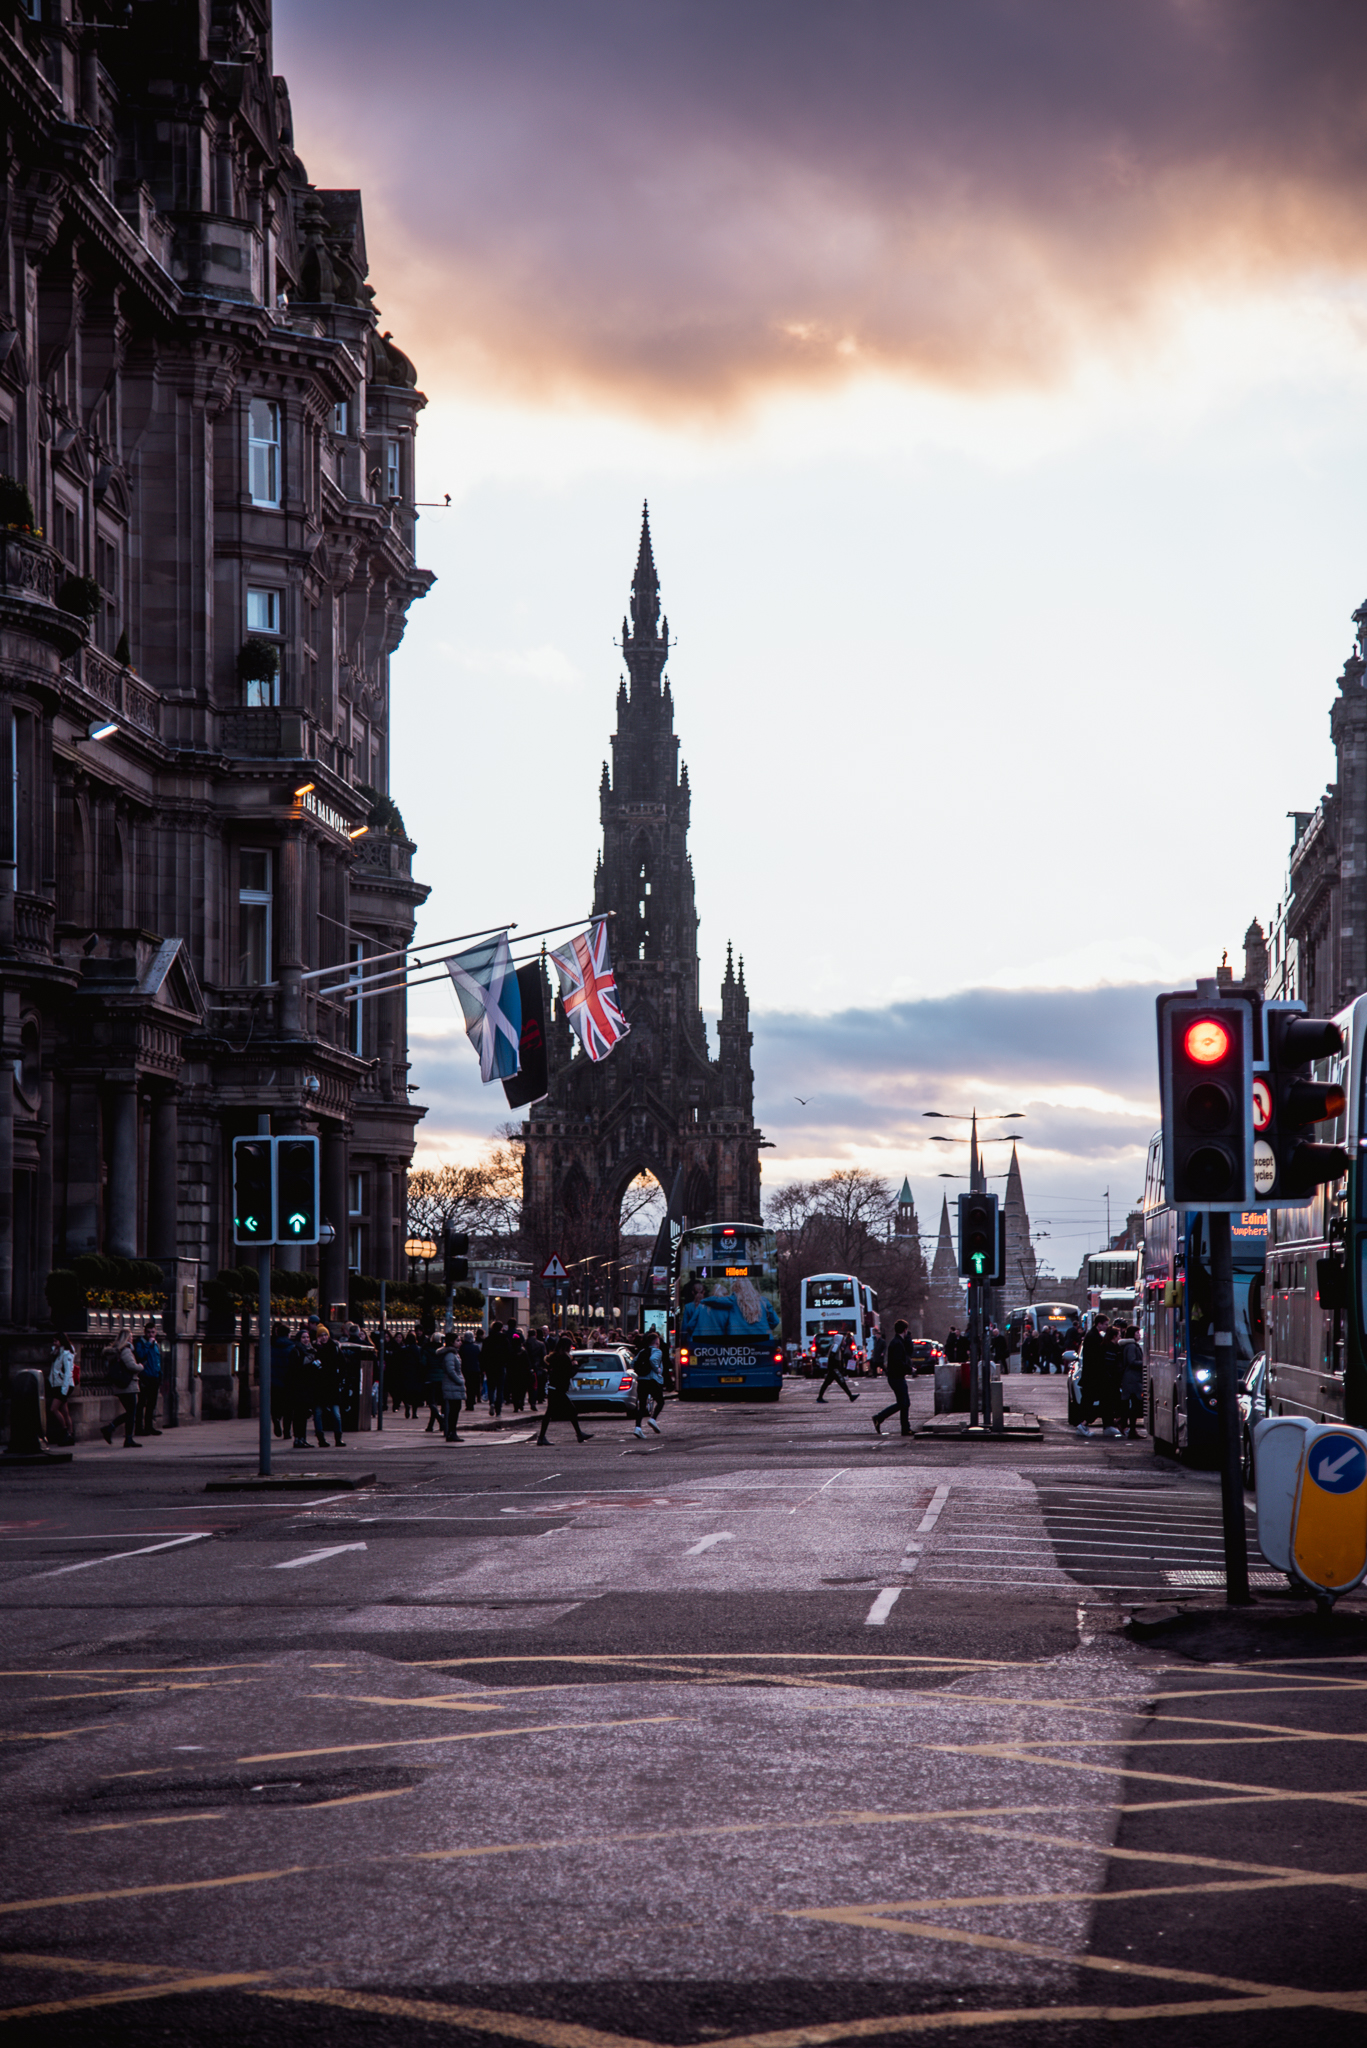 edinburgh, scotland , uk, city, architecture, sunset, buildings